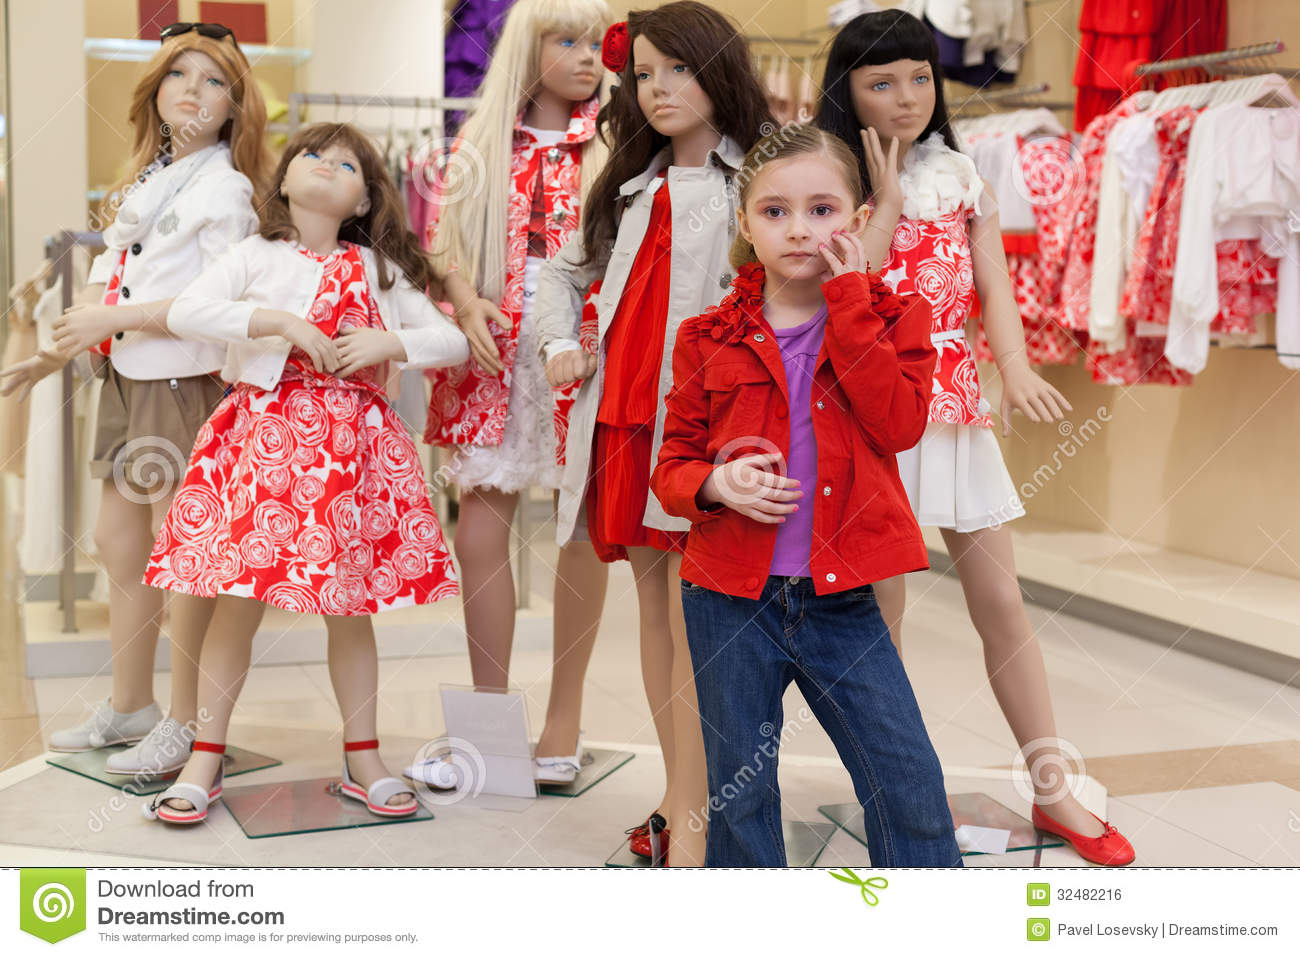 Royalty Free Stock Image: Little girls trying on clothes together with